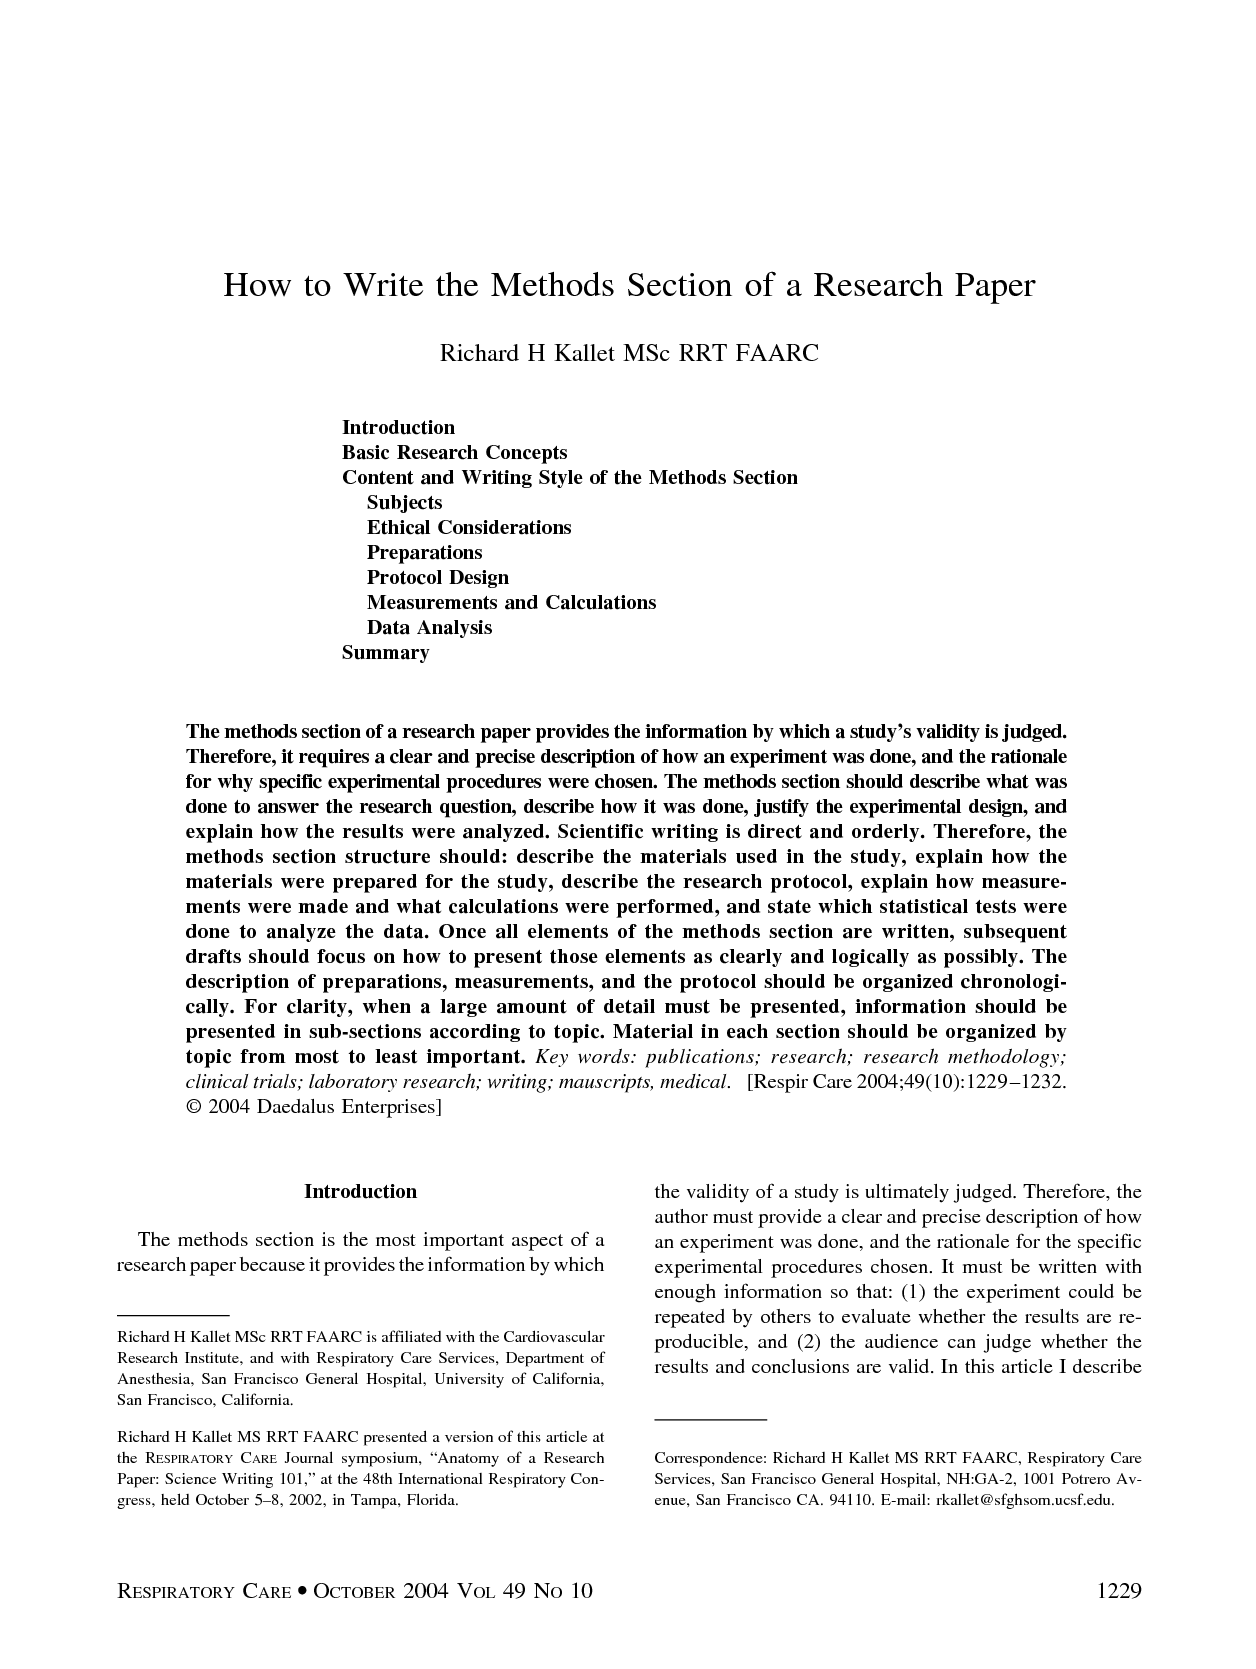 How to Make Methodology Chapter for Thesis - MasterPapers